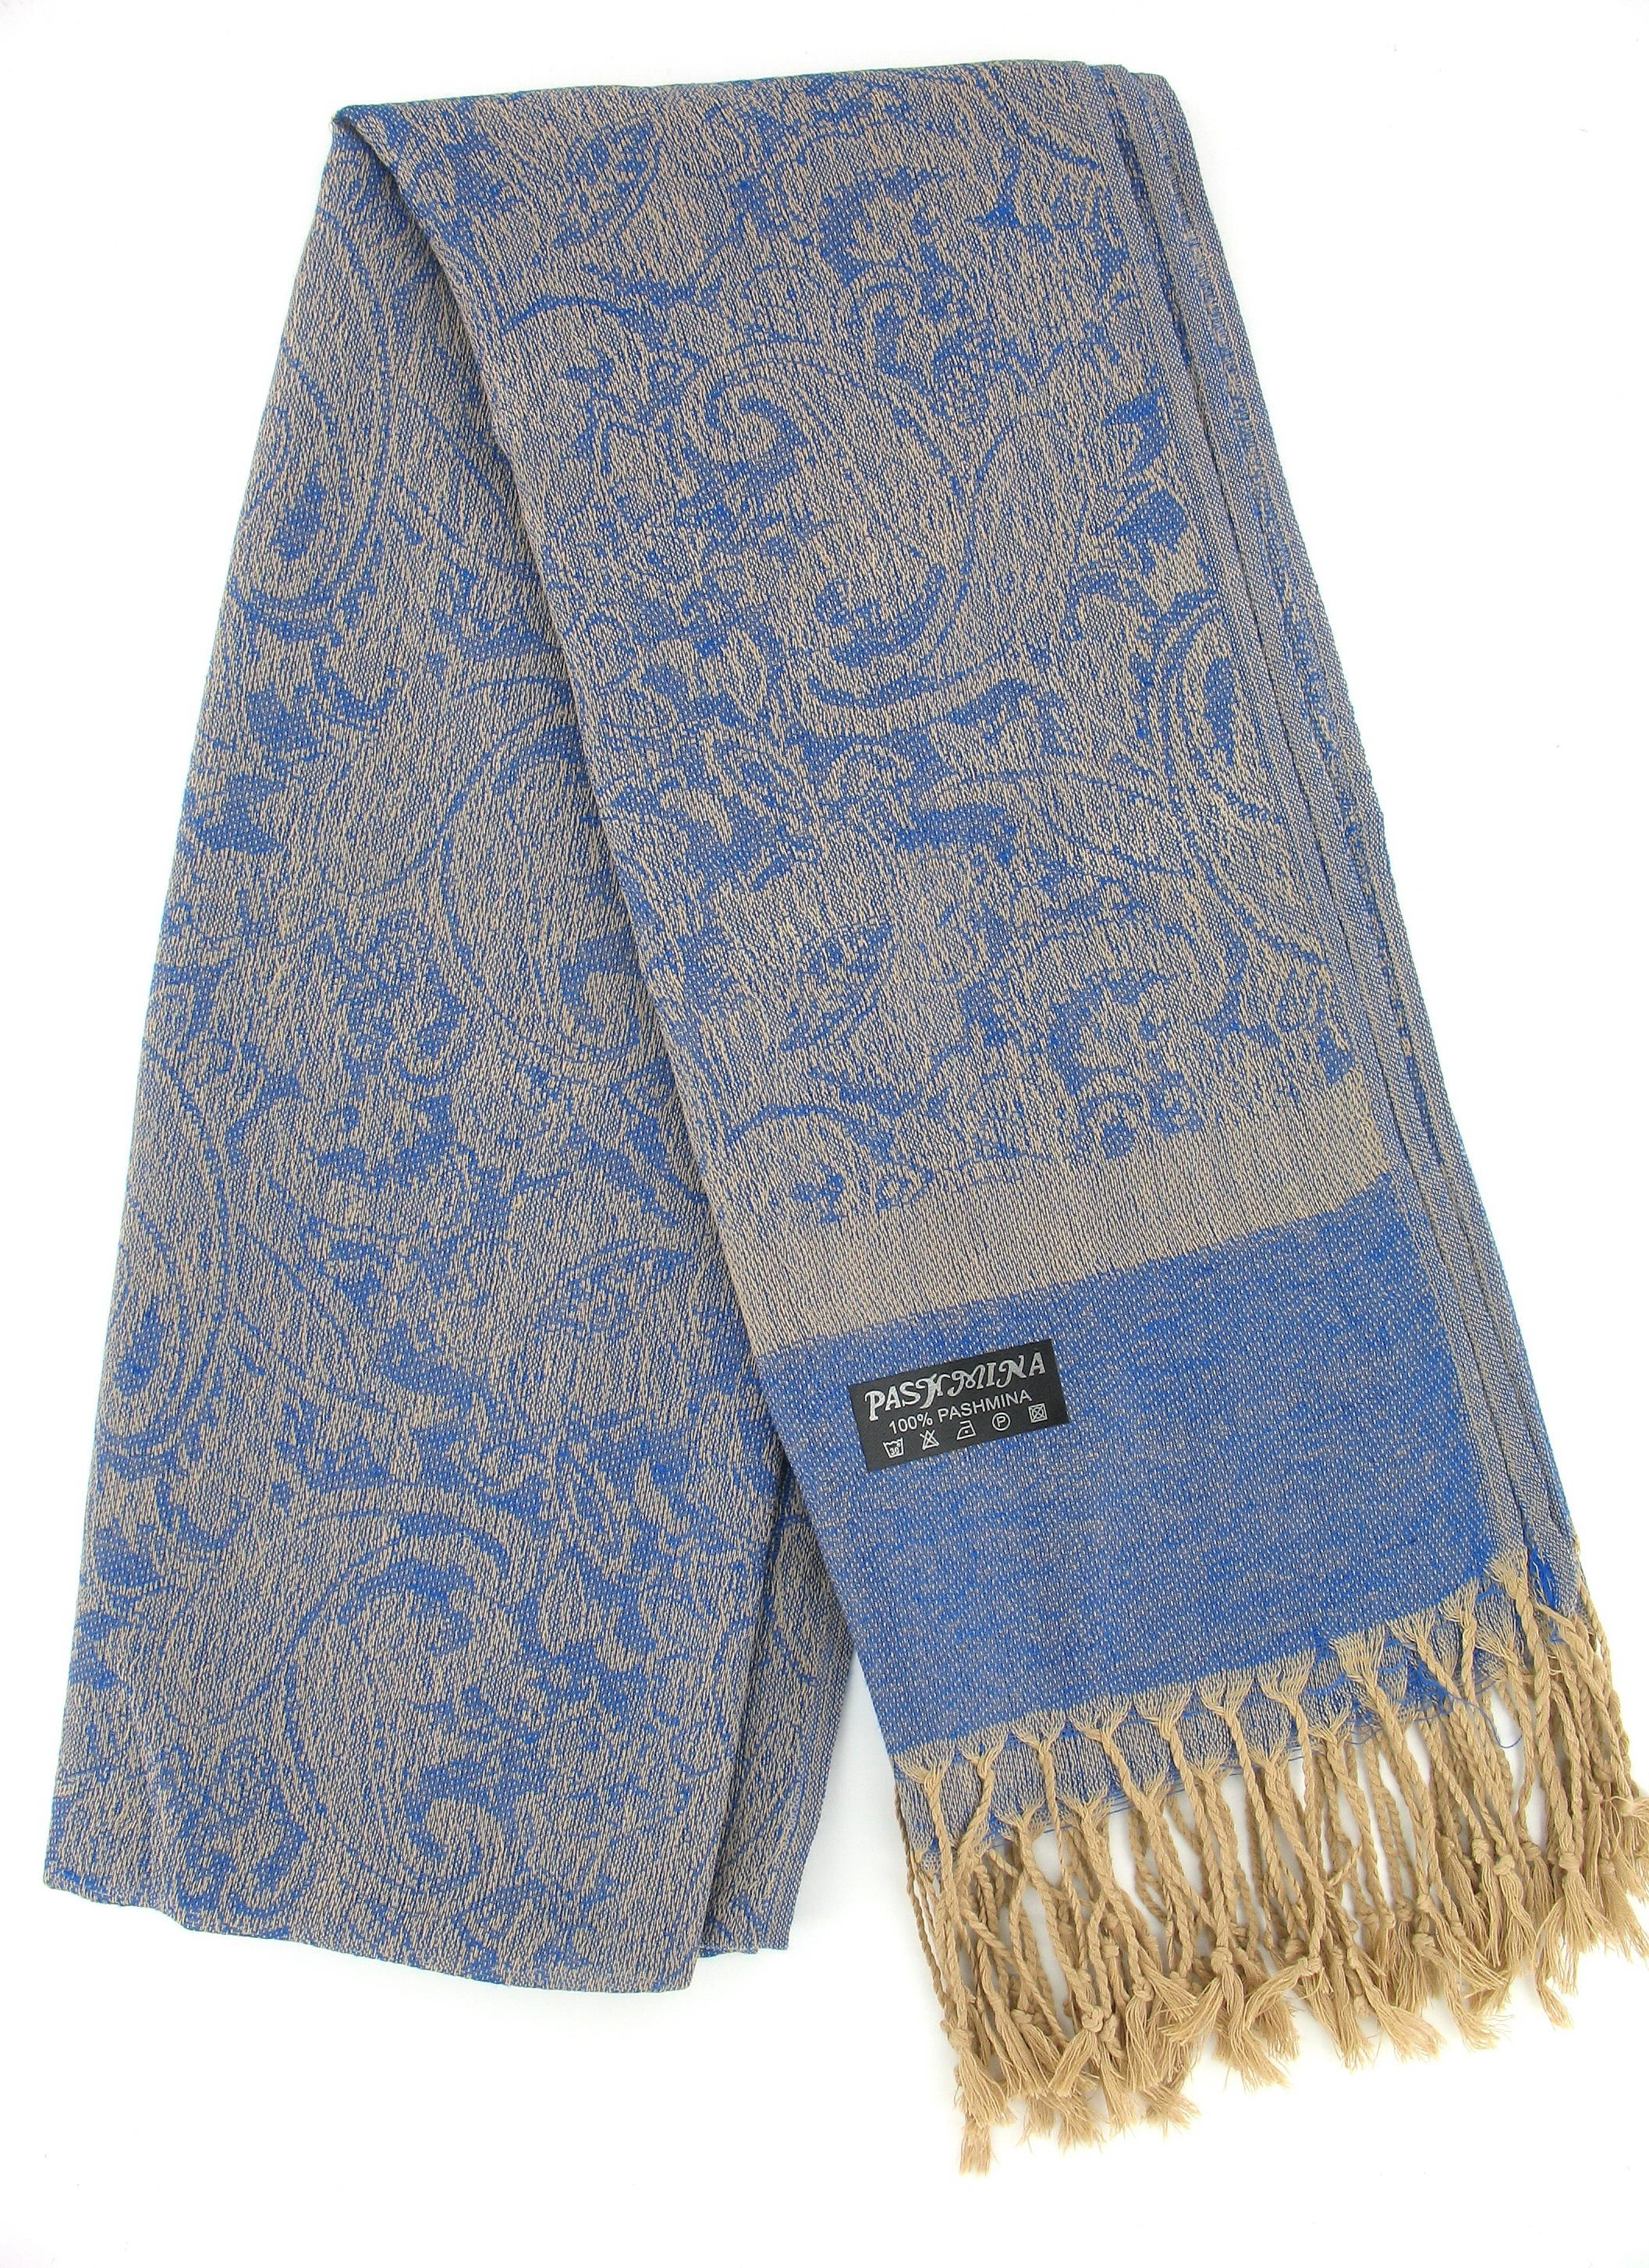 Scarf in Cobalt Blue